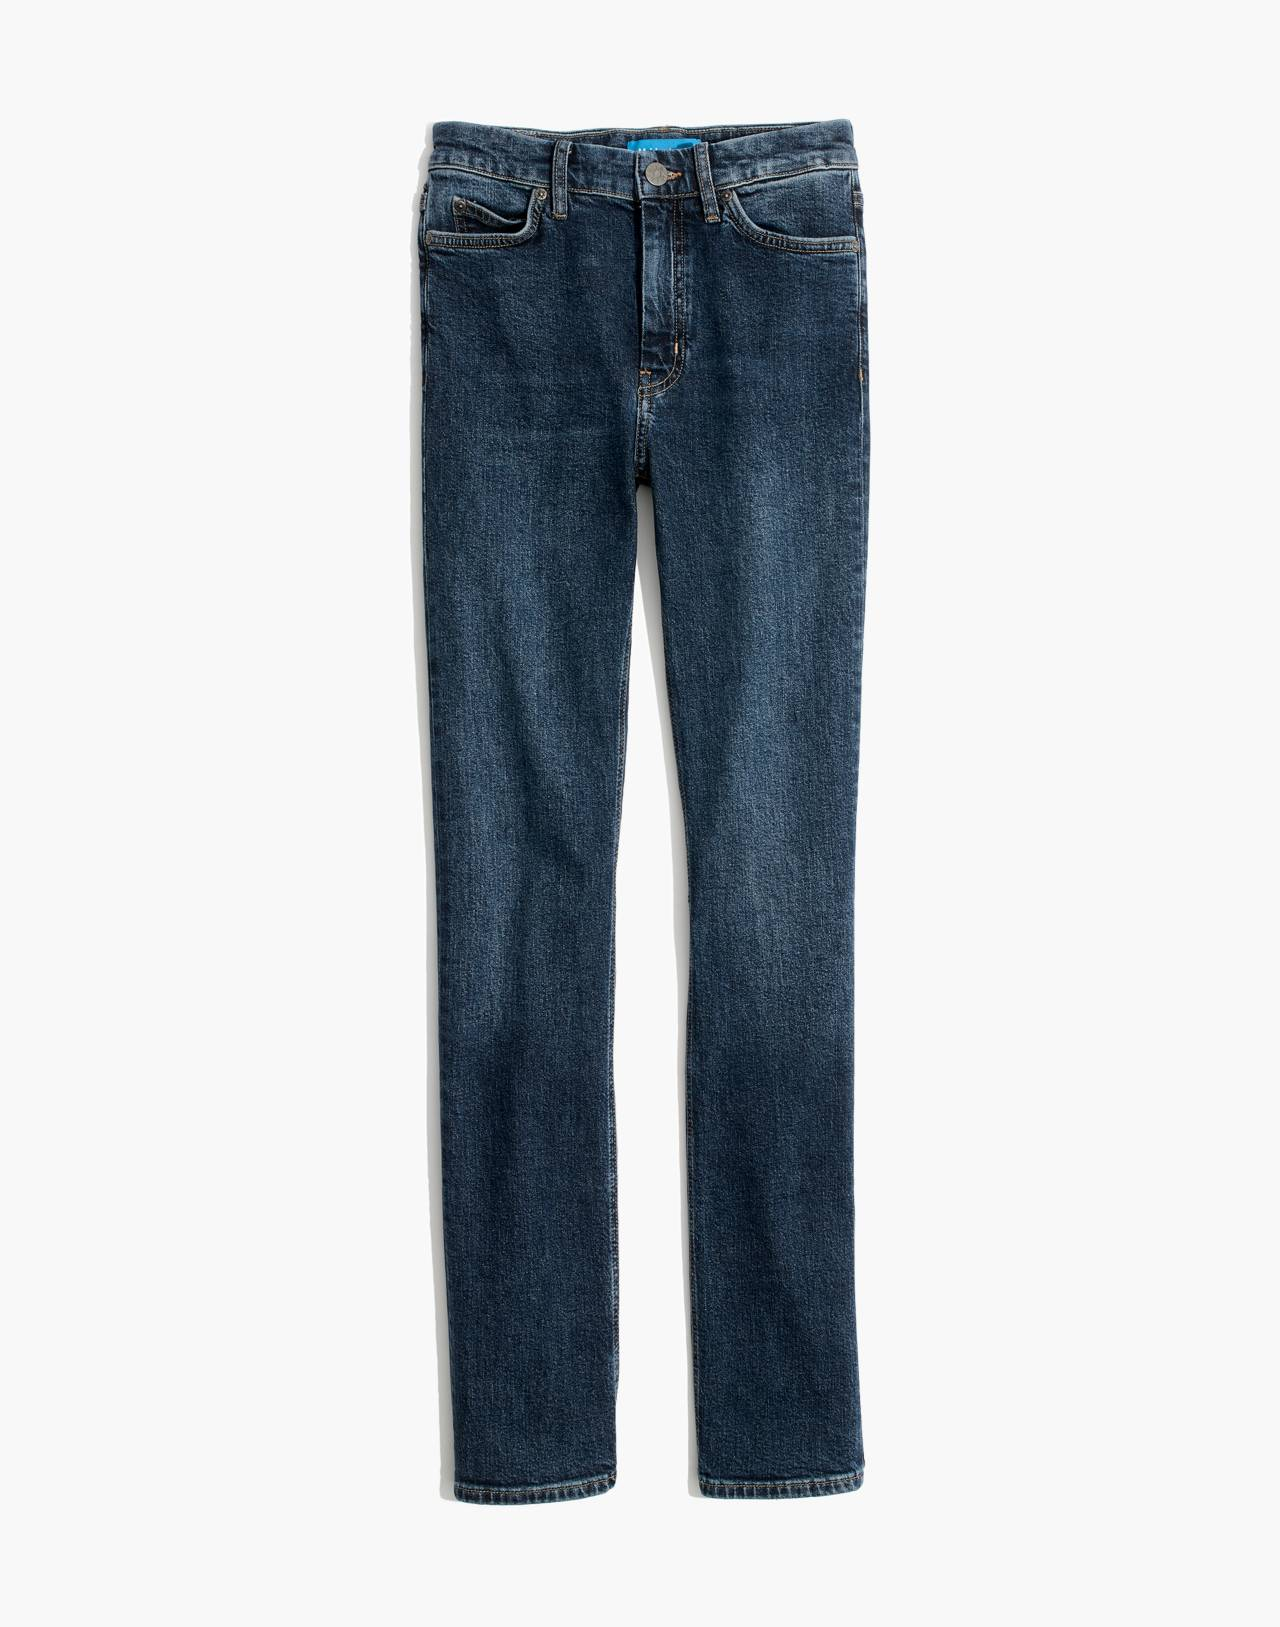 M.i.h® High-Rise Straight Jeans in sill wash image 4